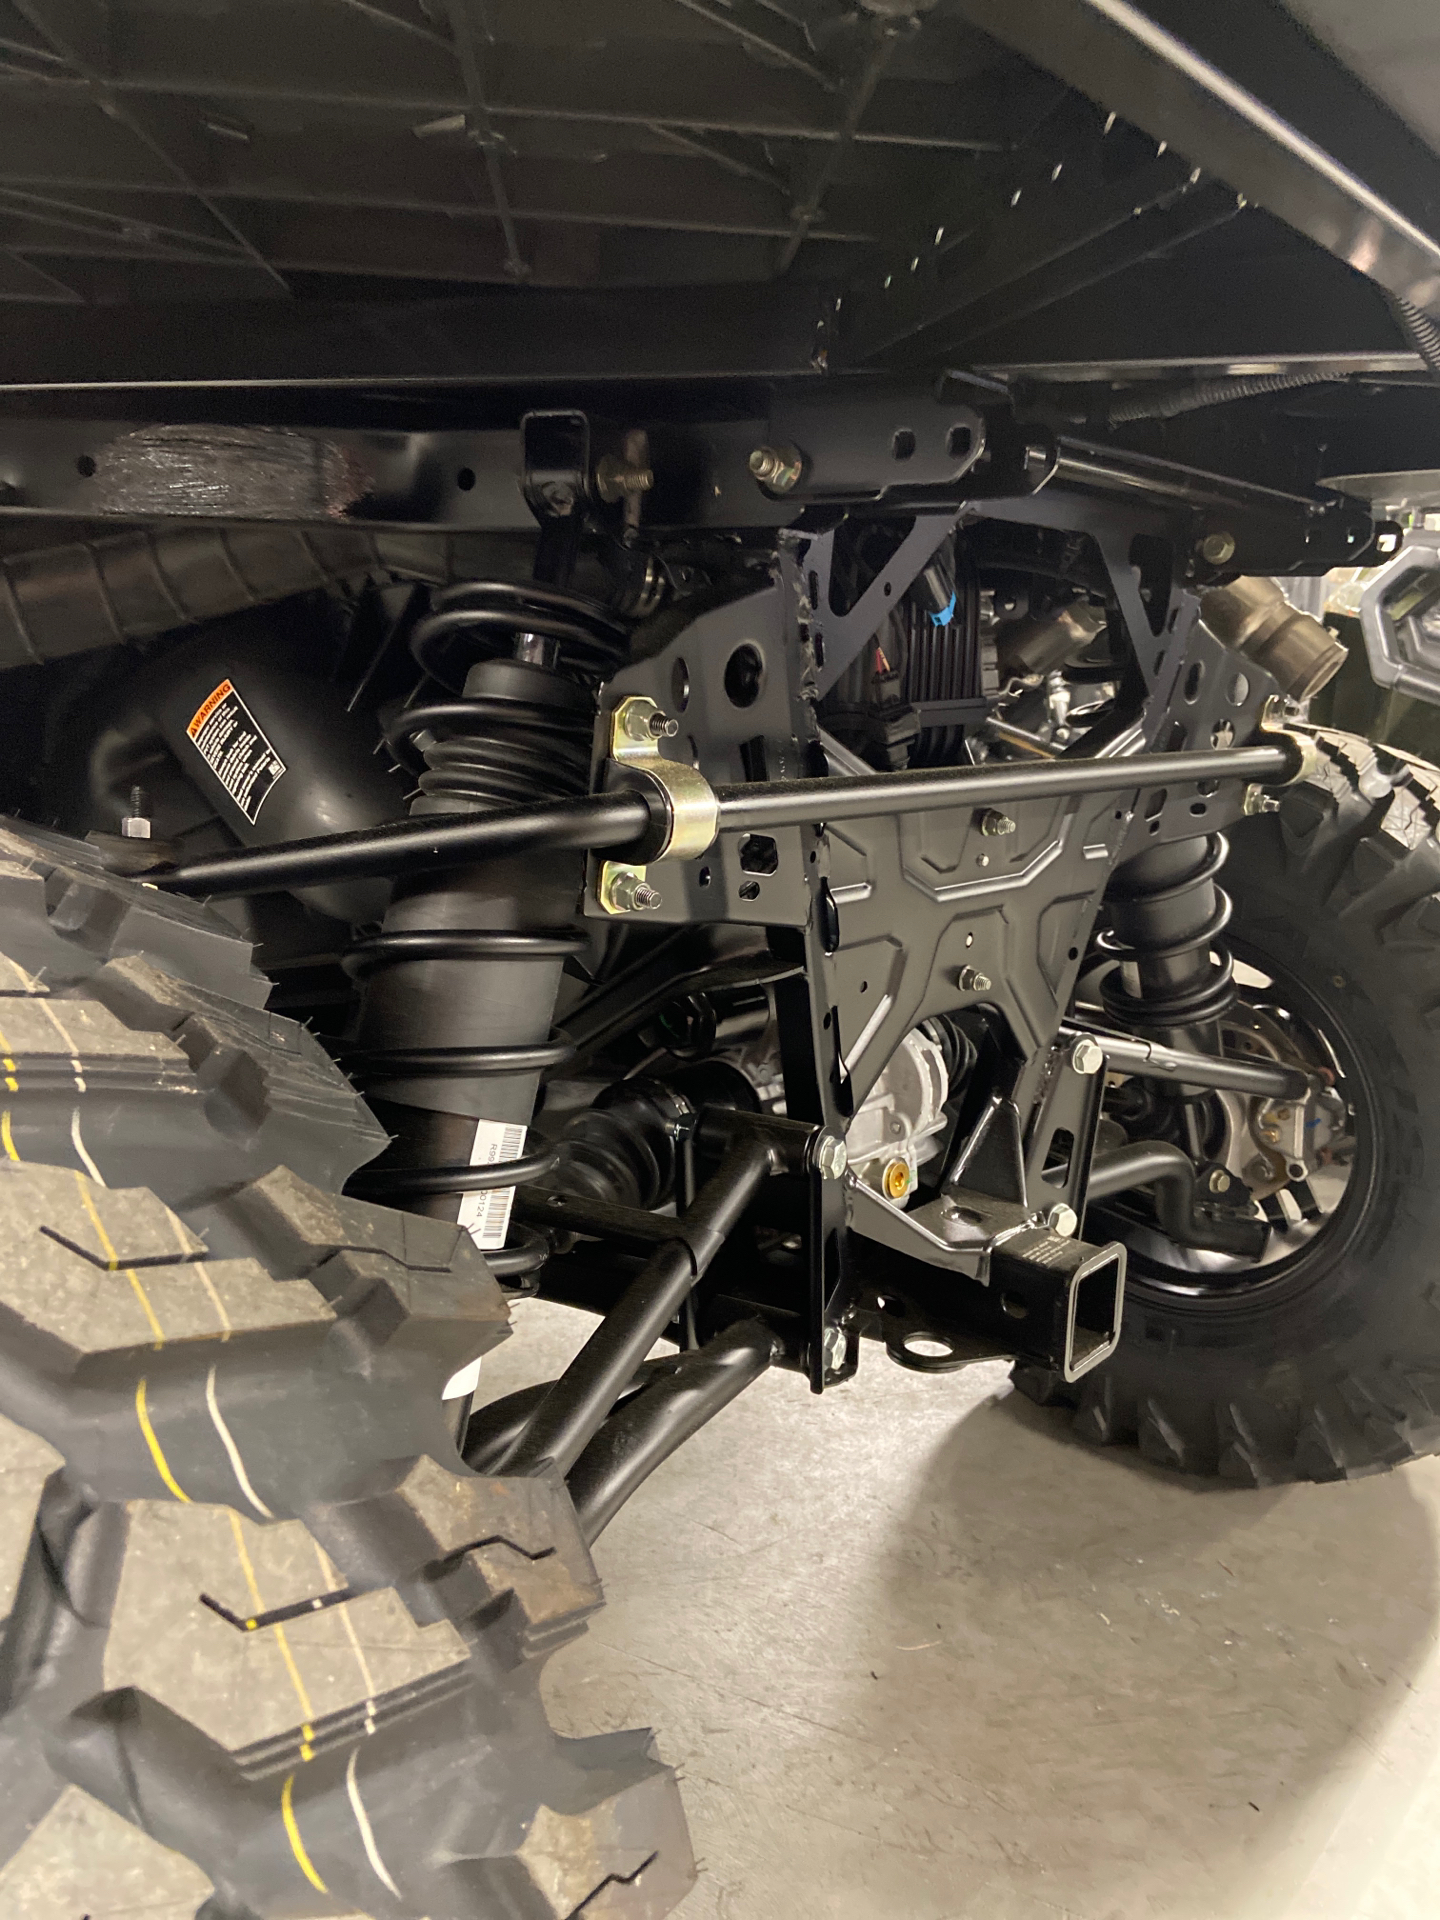 2021 Polaris Ranger XP 1000 Big Game Edition in Cochranville, Pennsylvania - Photo 5